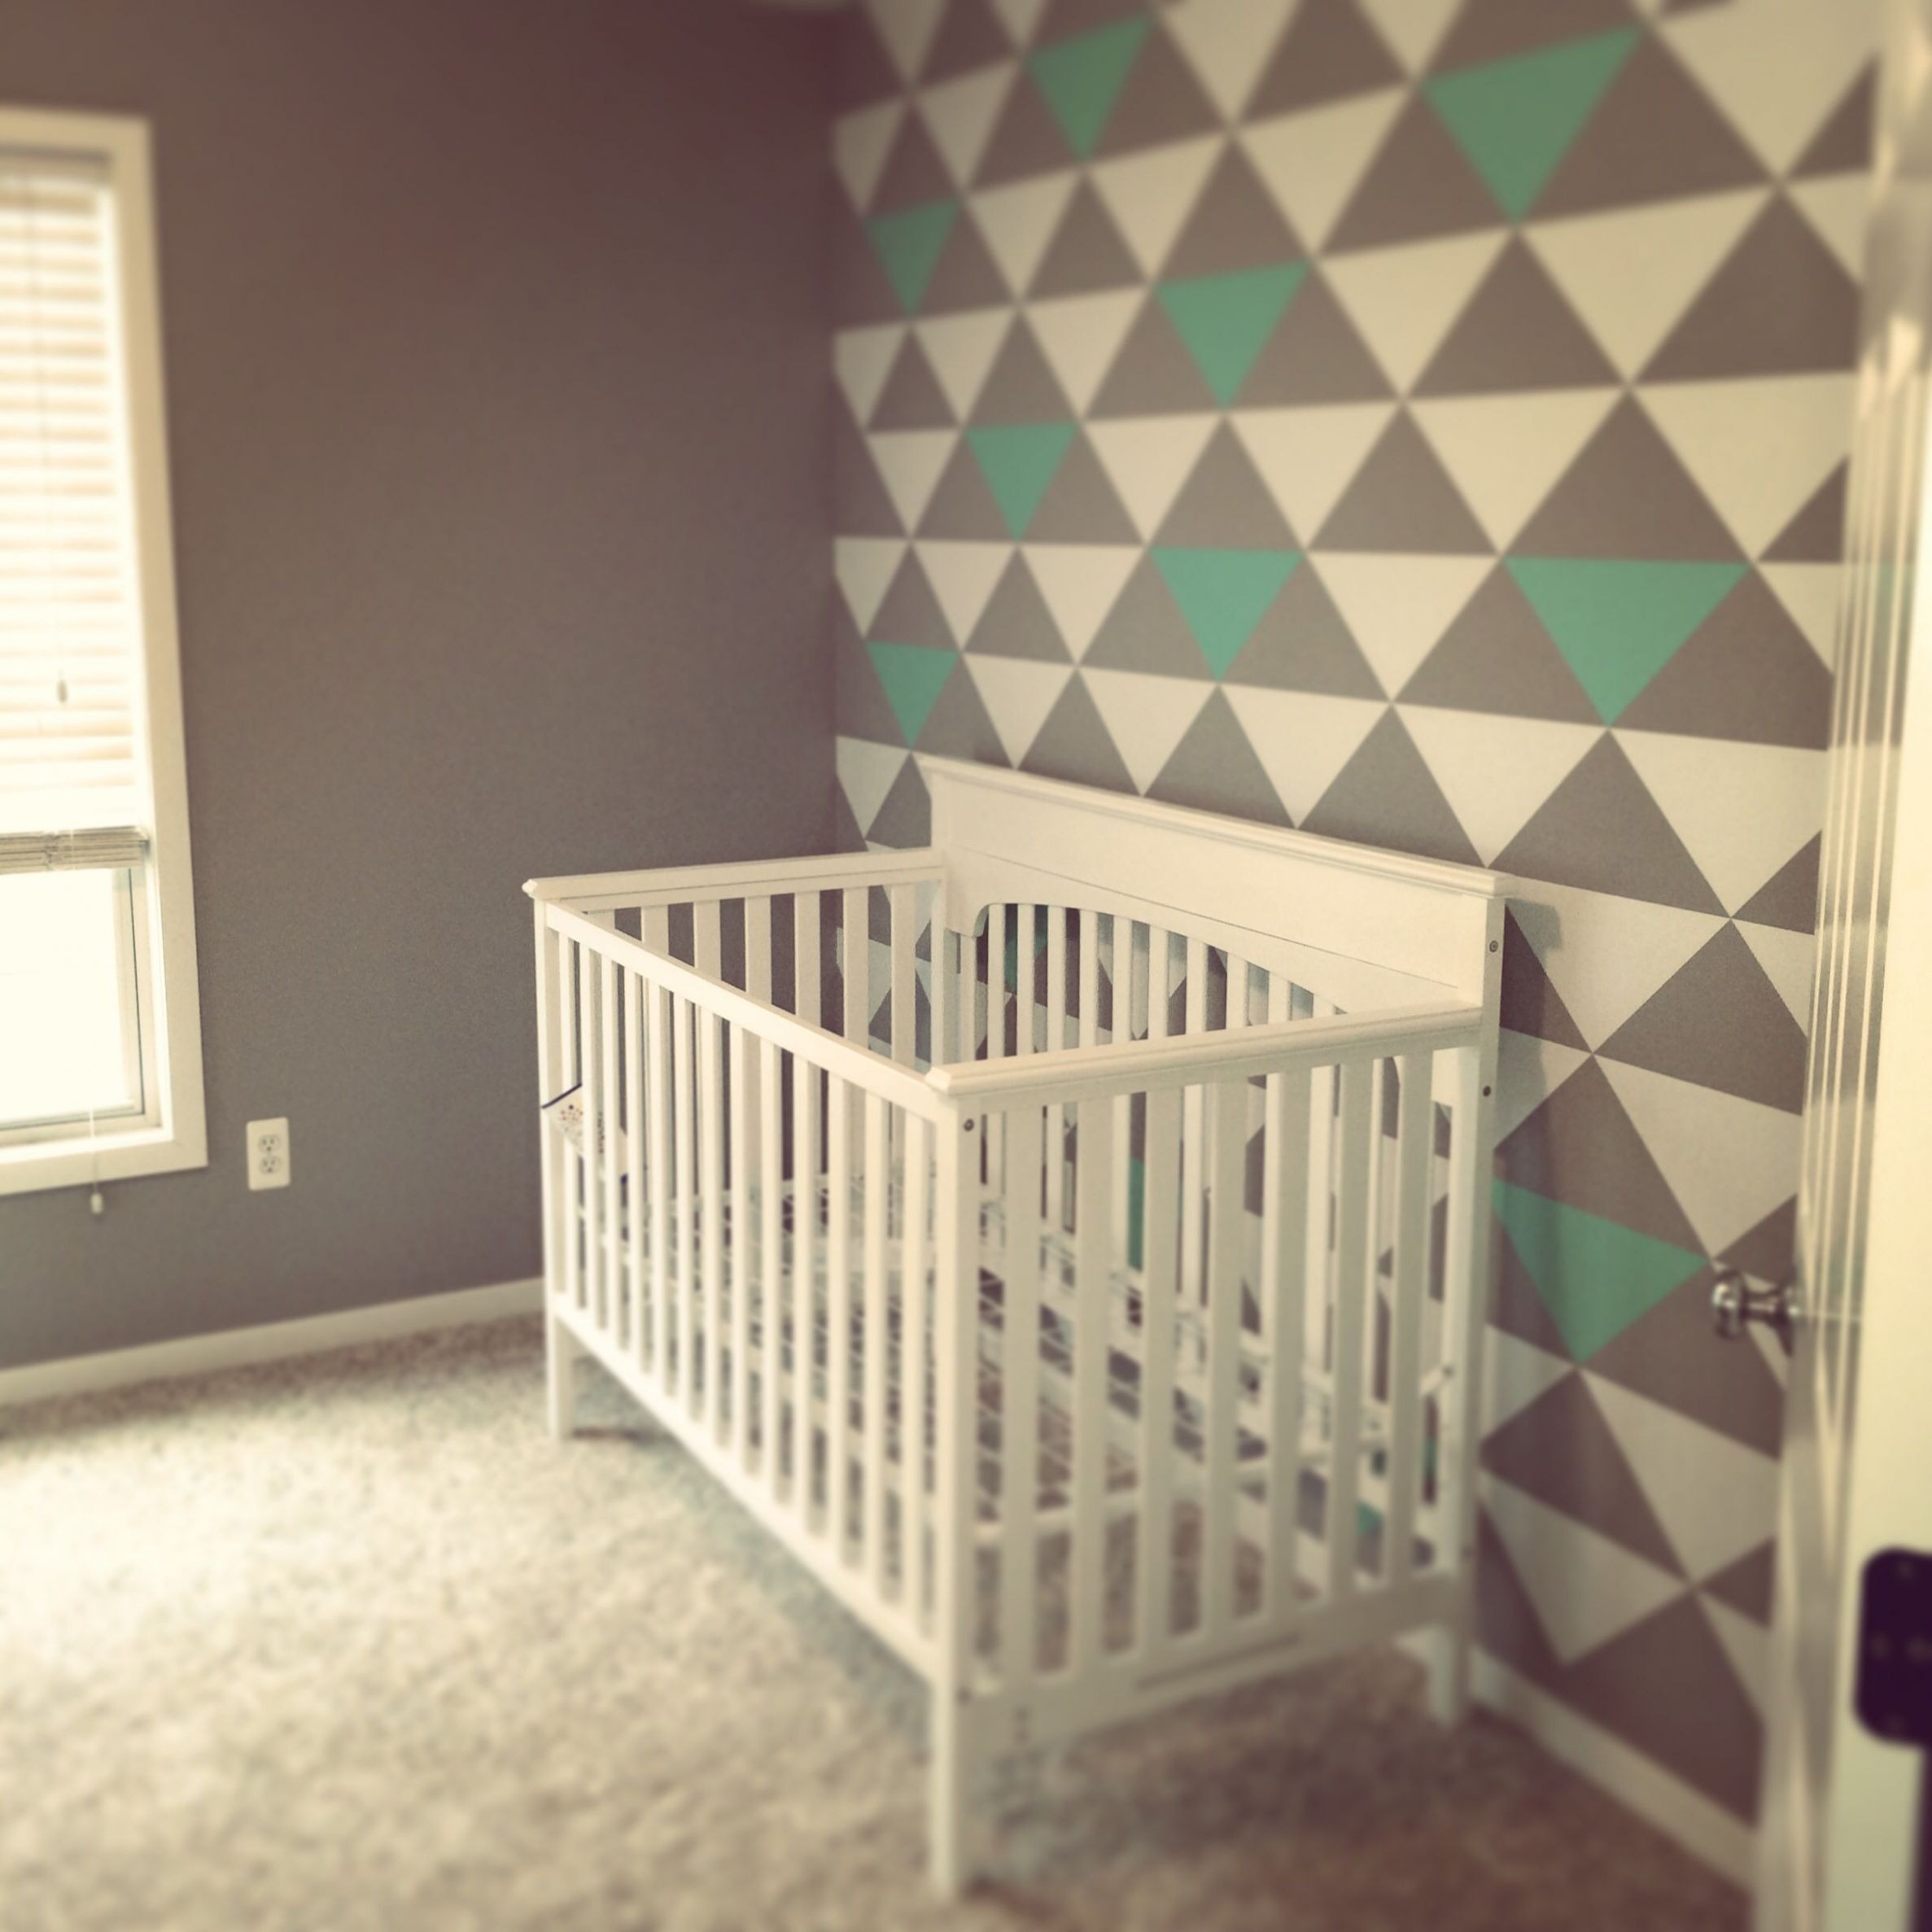 Nursery Accent Wall (With images) | Nursery accent wall, Nursery ..